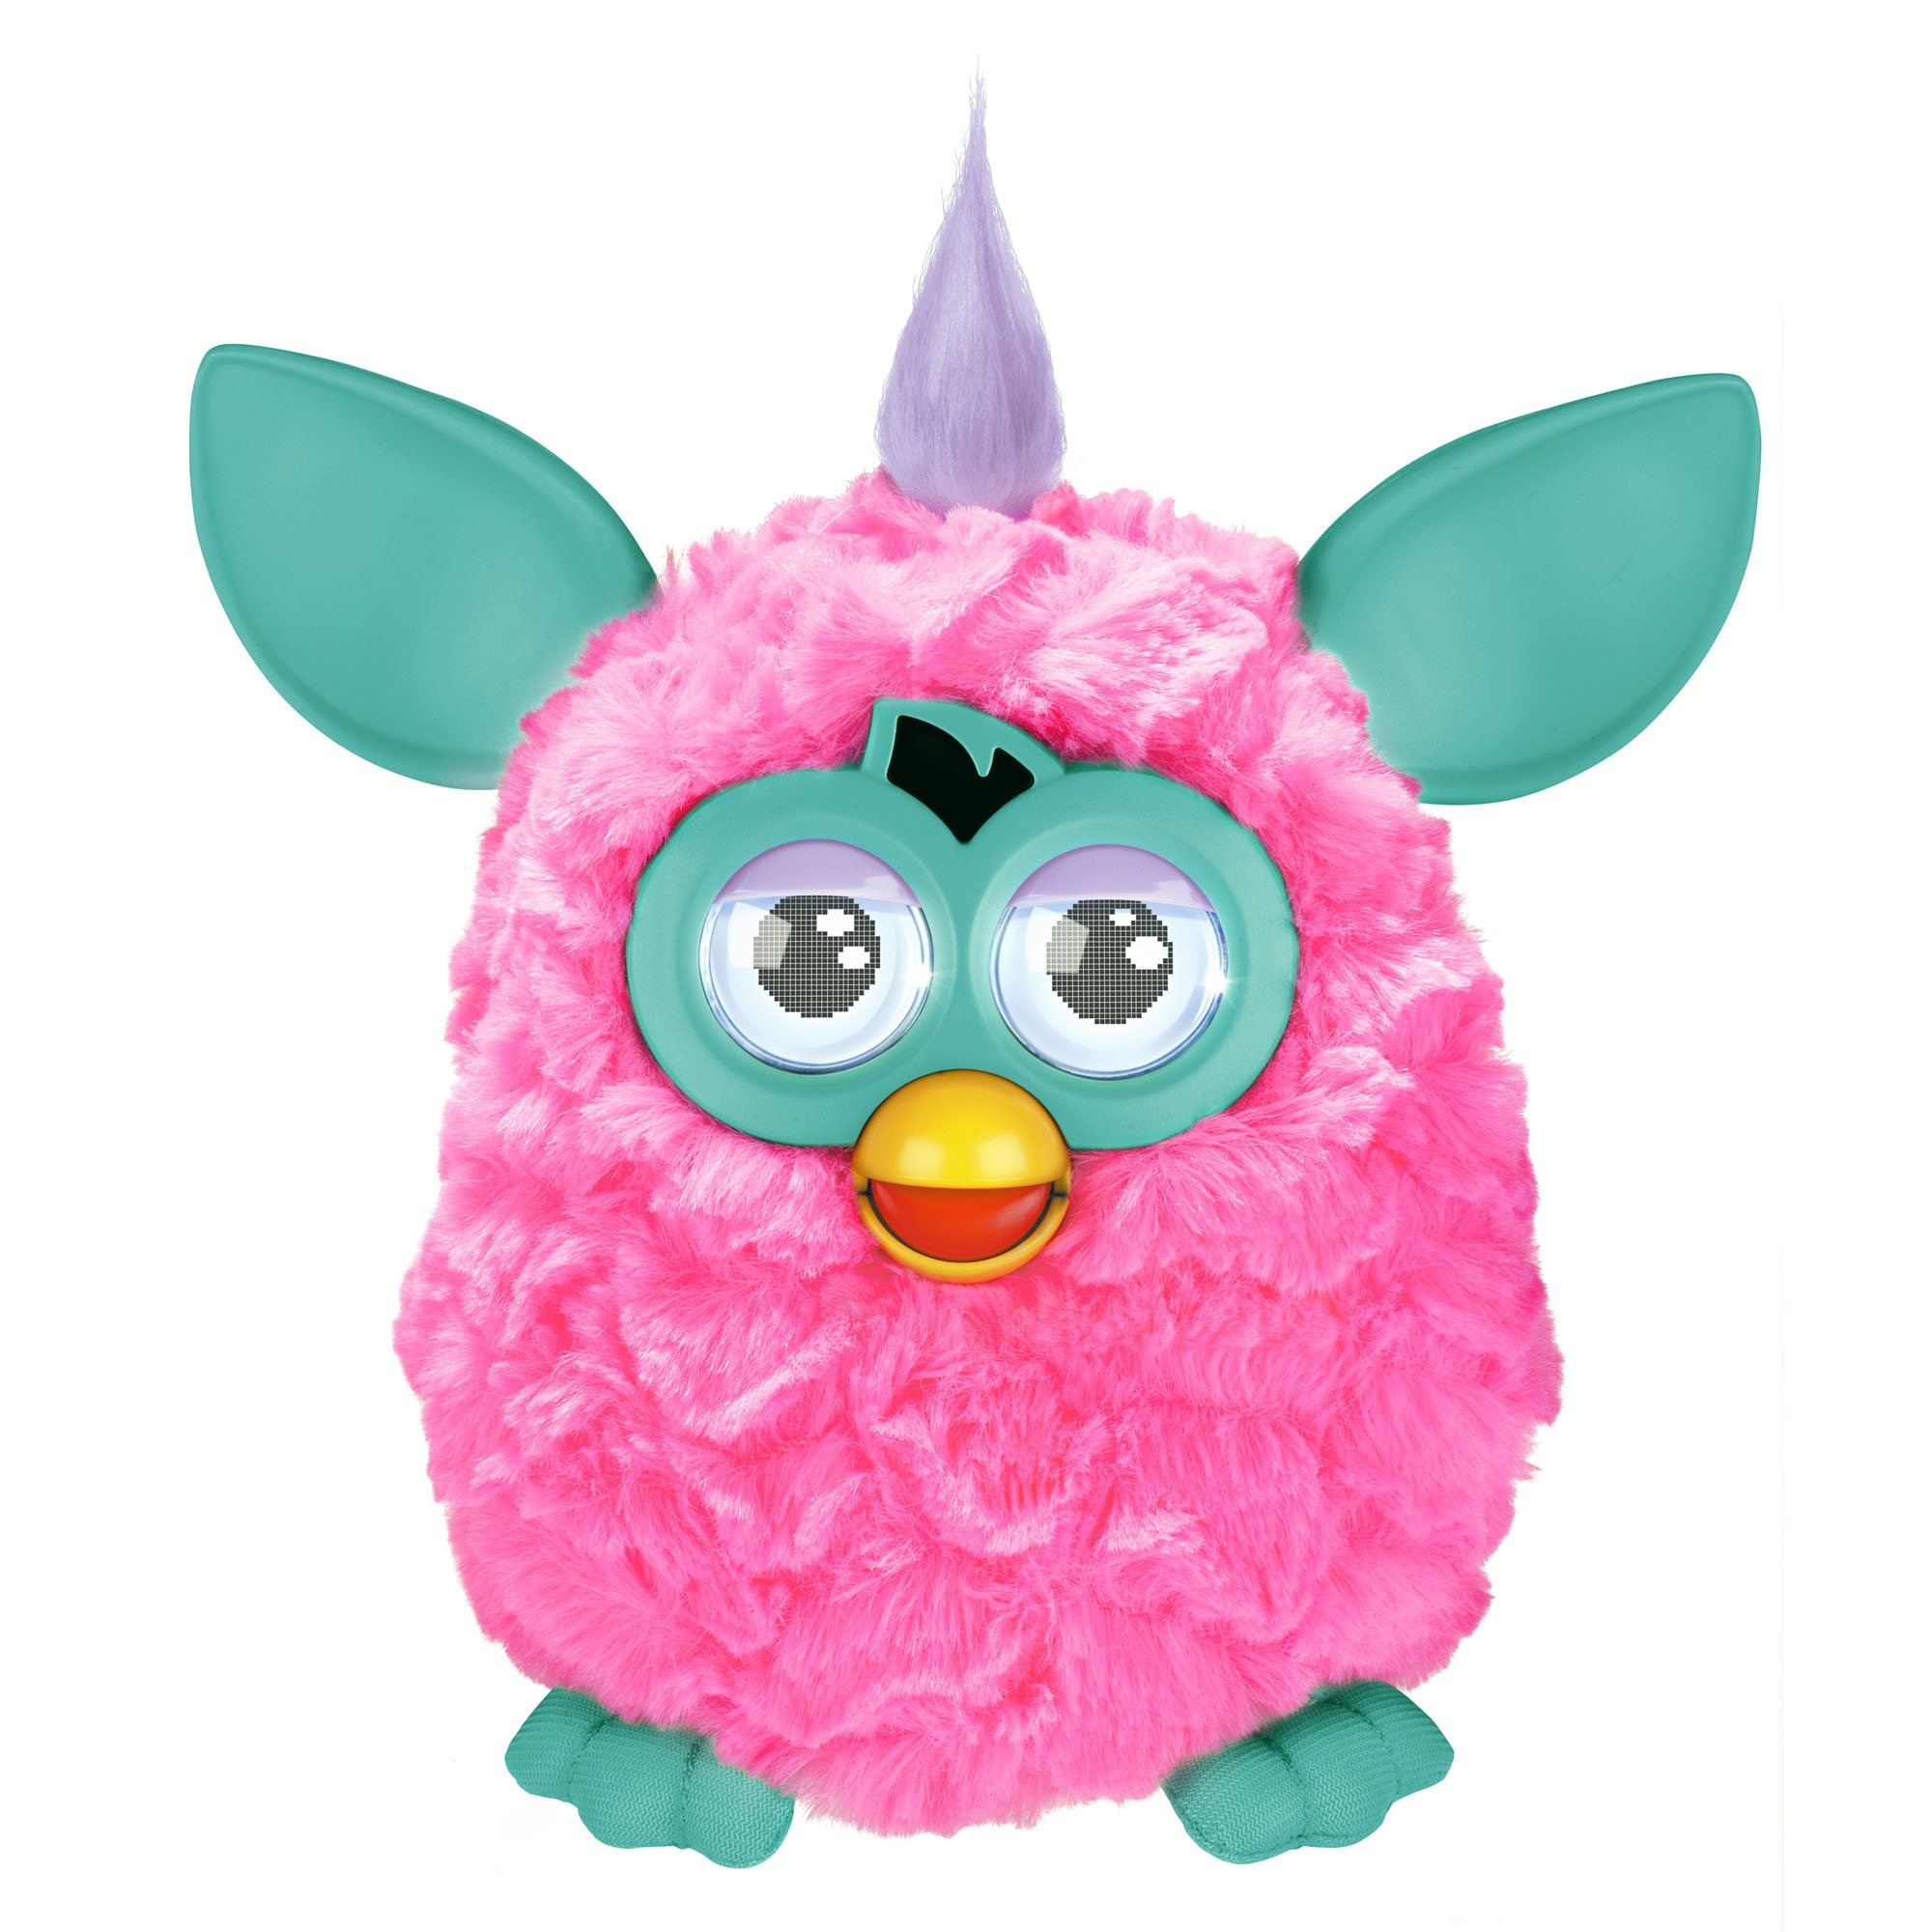 Furby (Pink/Teal) by Furby (Image #1)